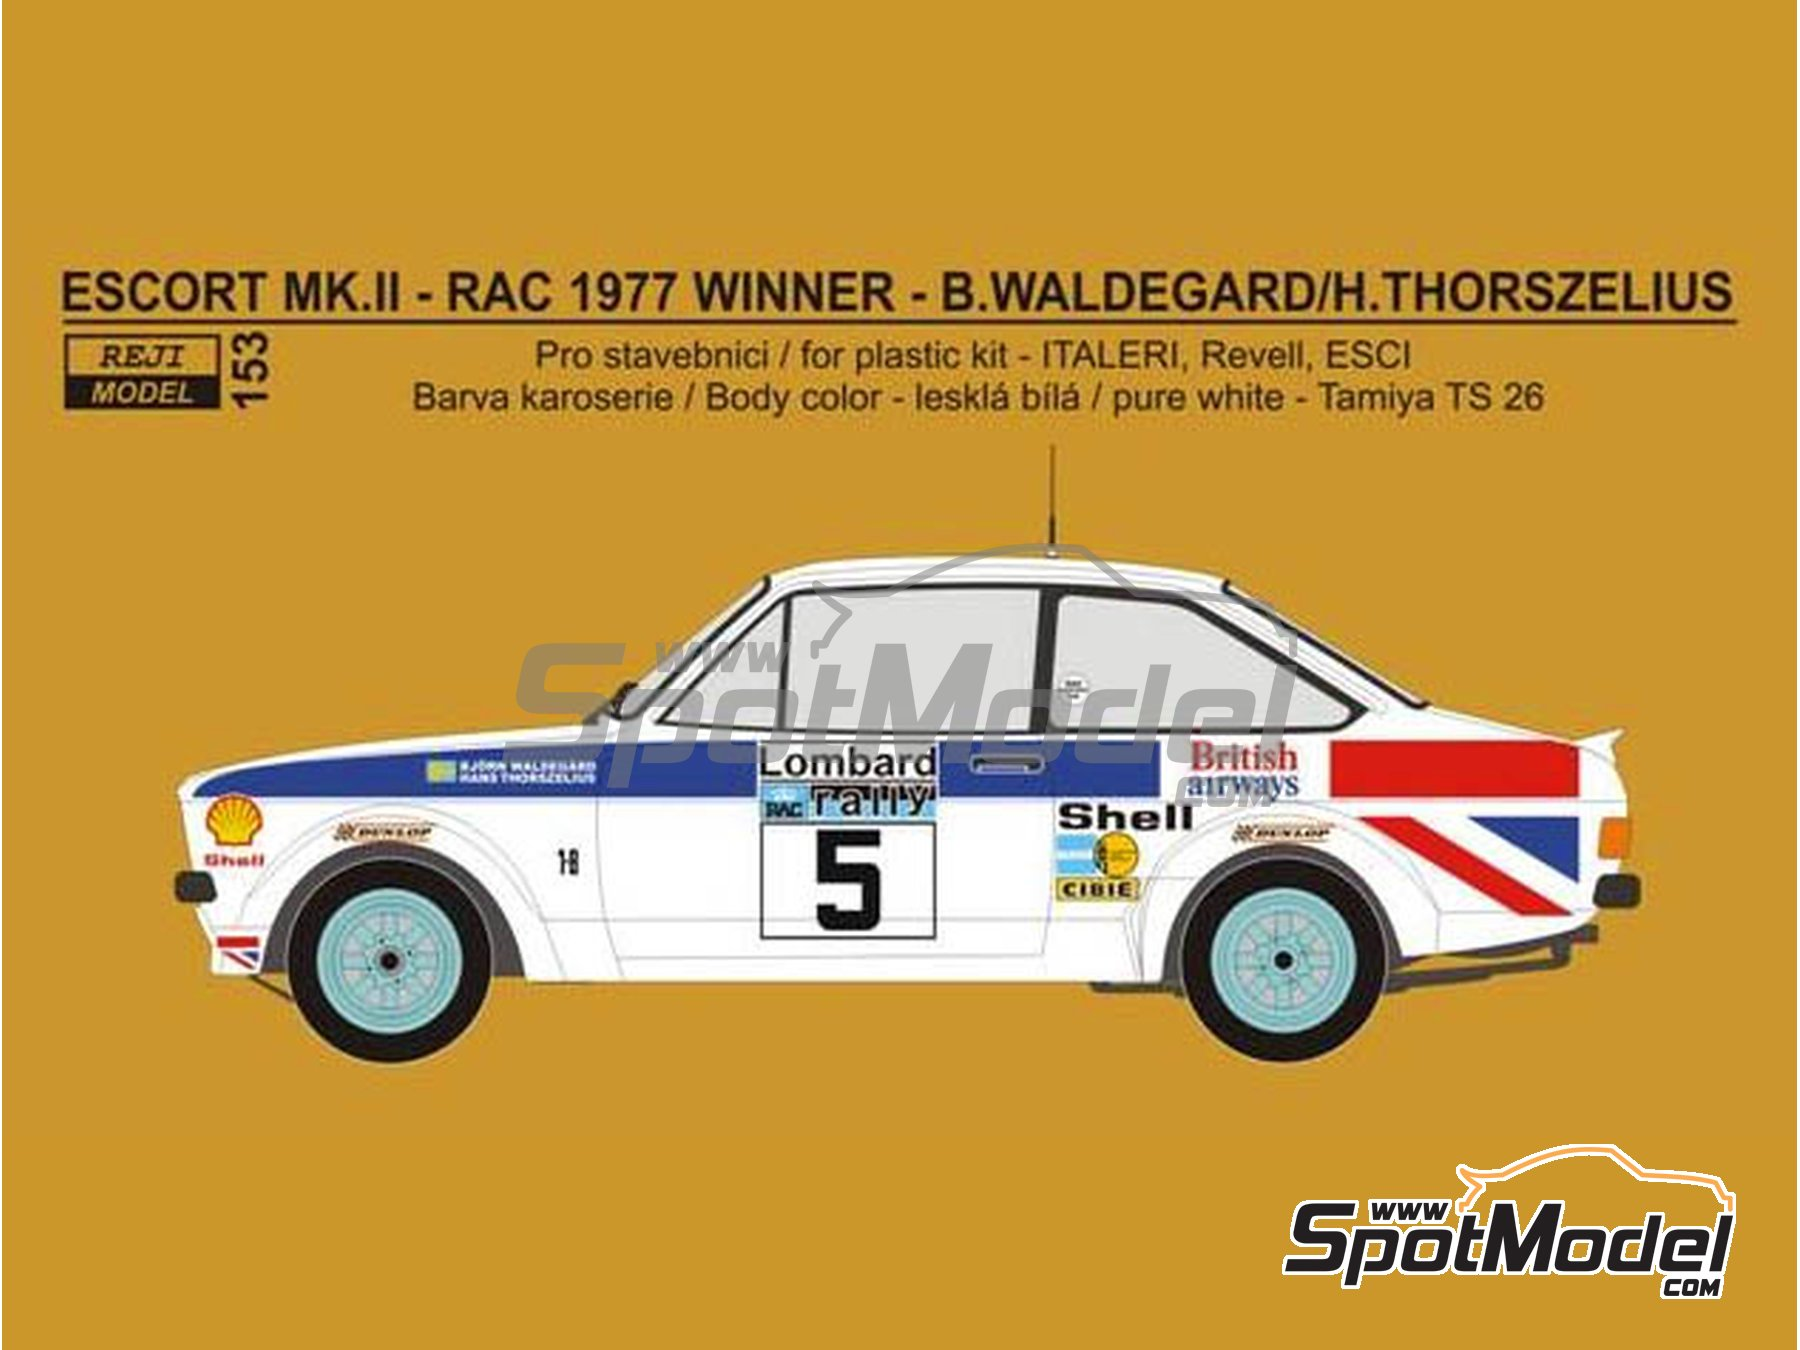 Image 2: Ford Escort Mk. II British Airways - Rally de Inglaterra RAC 1977 | Decoración en escala 1/24 fabricado por Reji Model (ref. REJI-153)